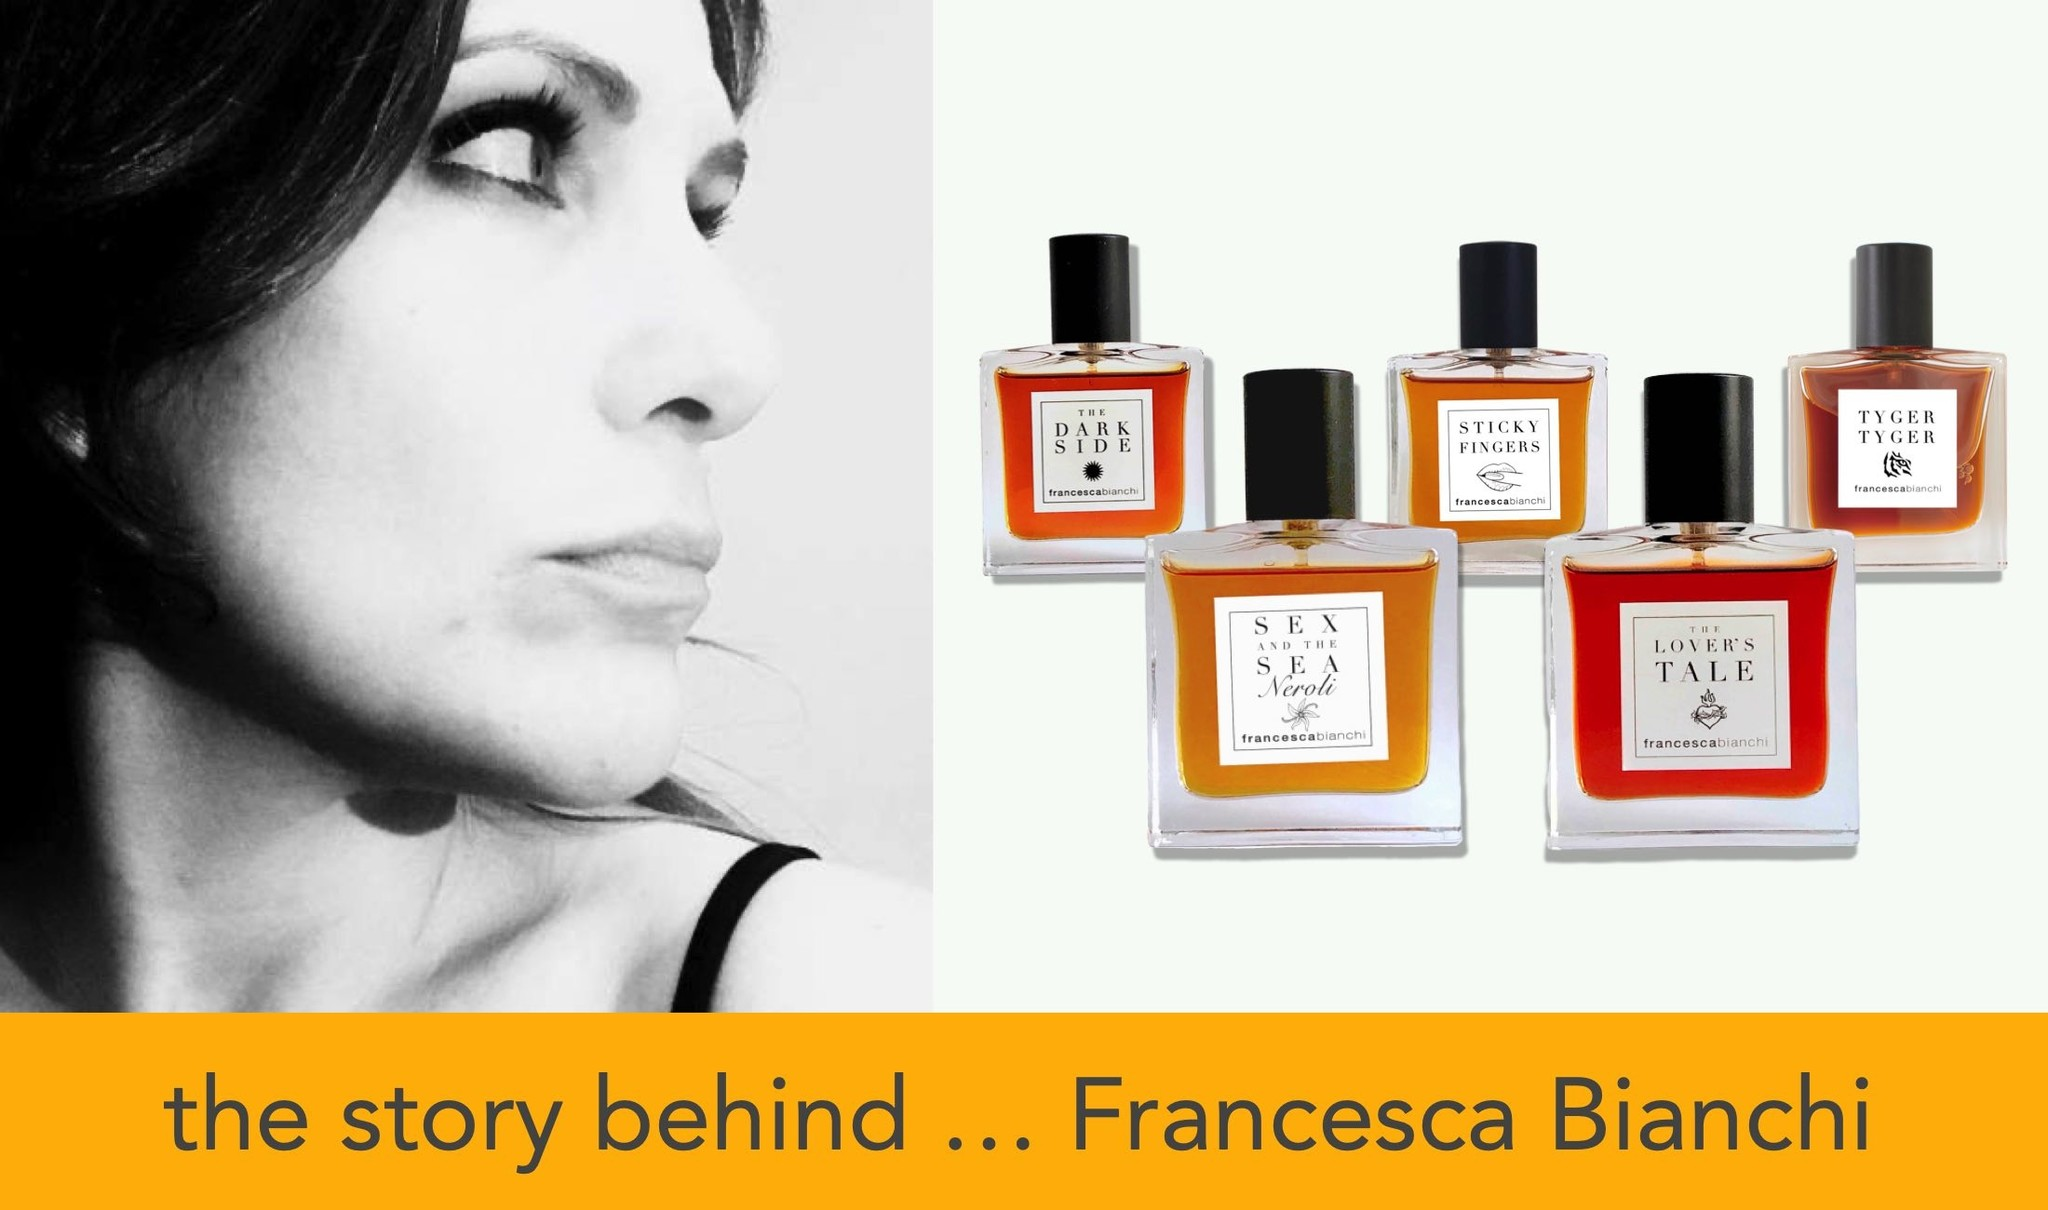 the story behind ... Francesca Bianchi